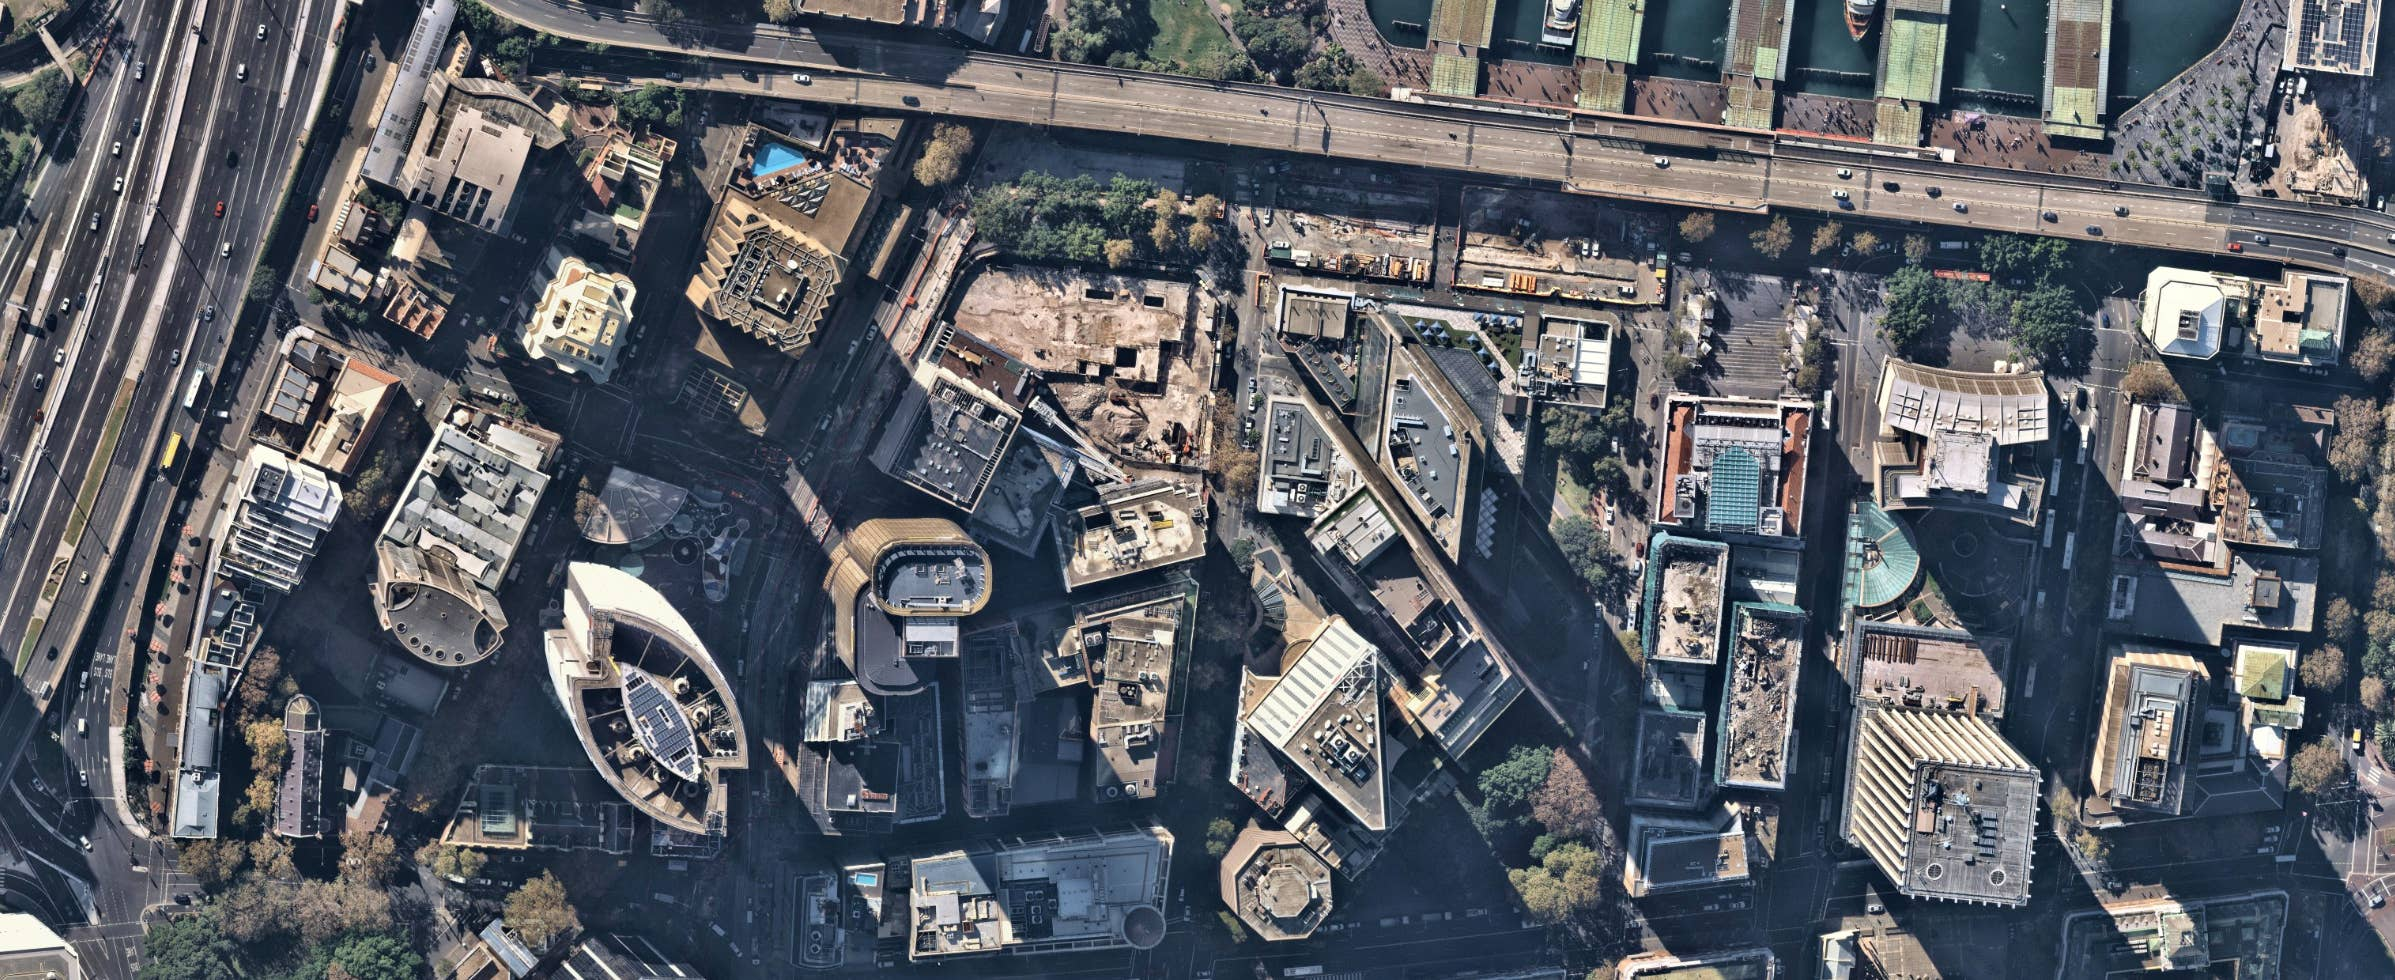 aerial, imagery, construction, urban, Sydney NSW, 2018 May 05